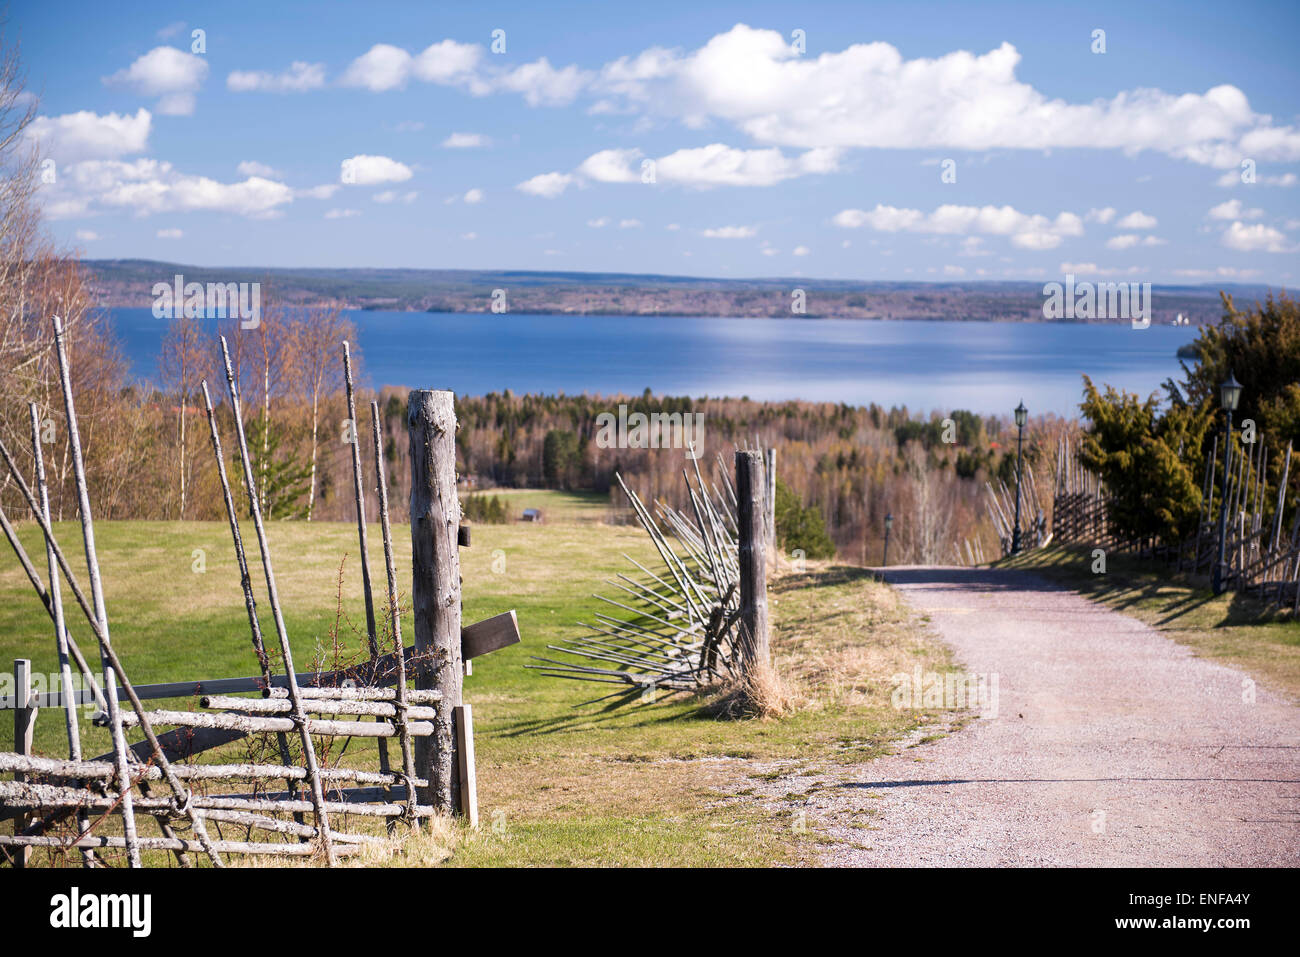 View from Dalarna Sweden - Stock Image